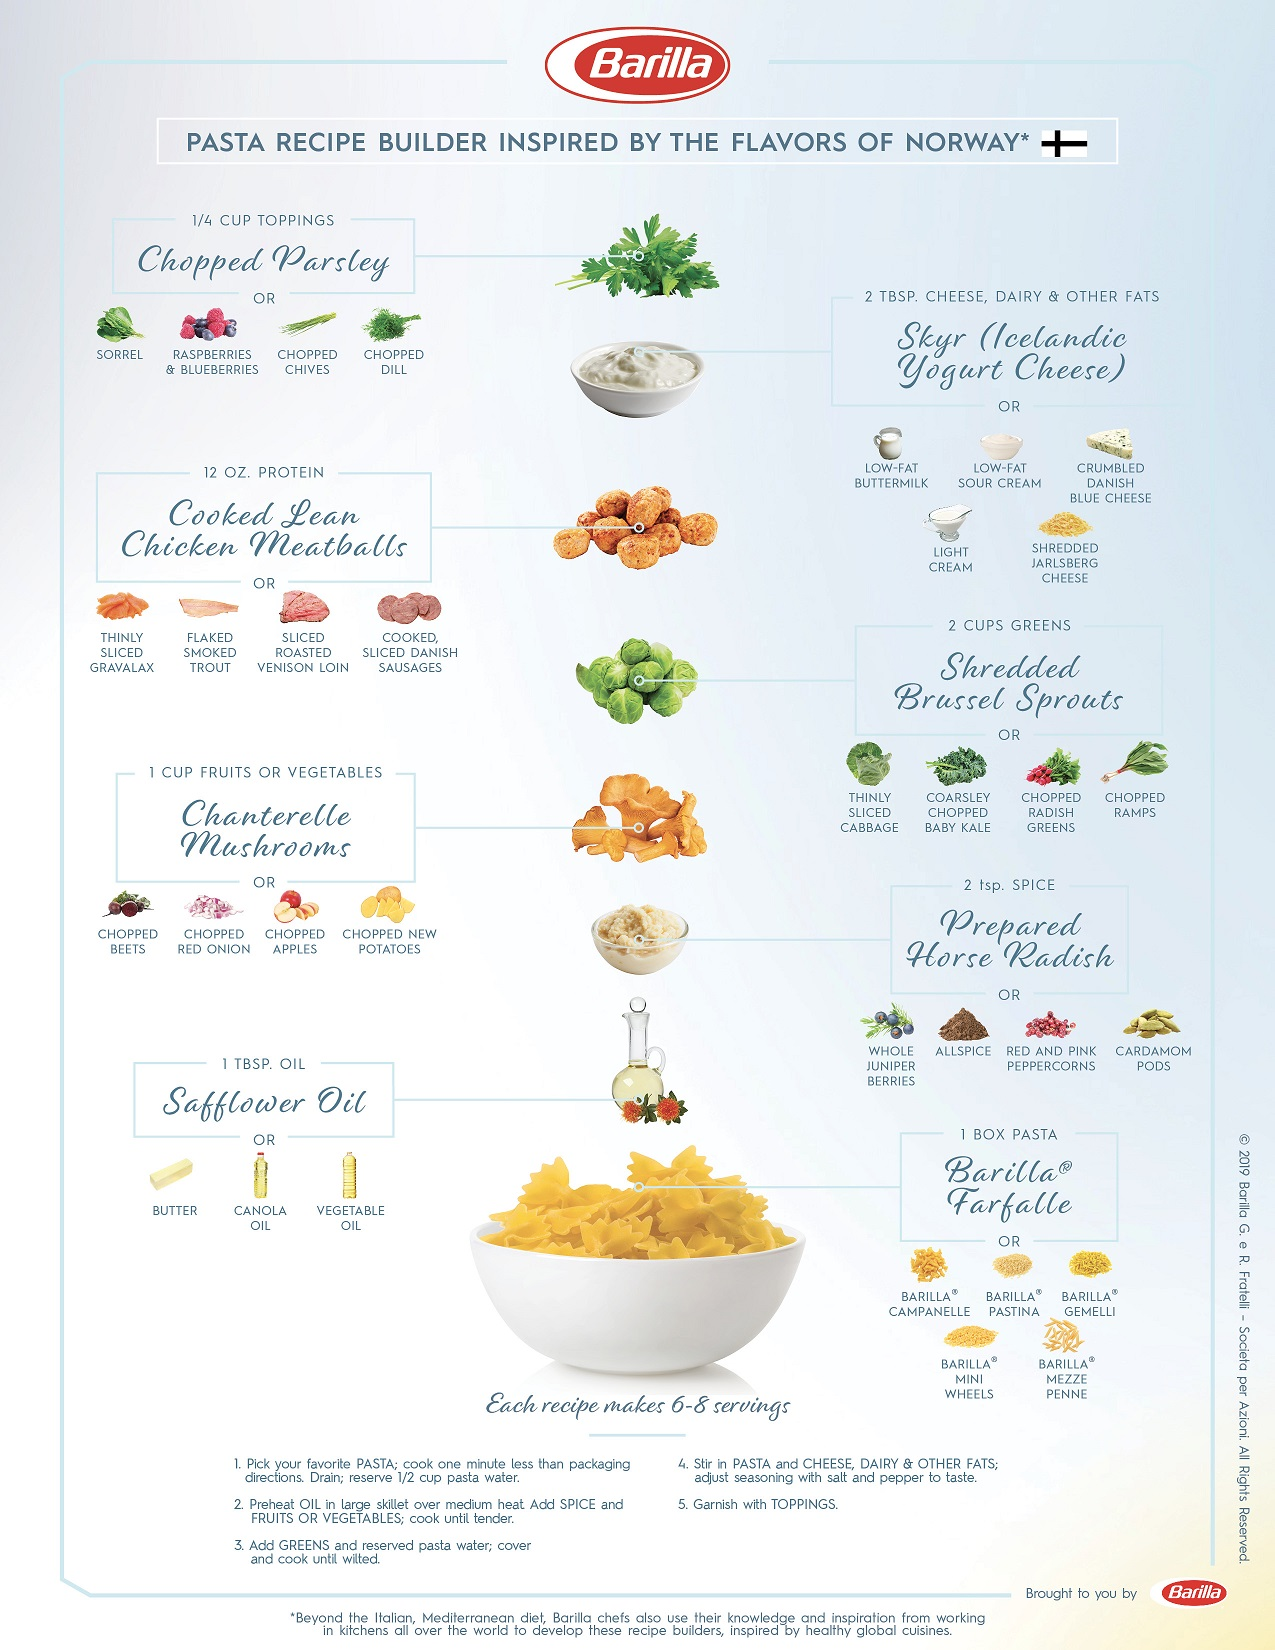 Recipe Builder inspired by the flavors of Norway